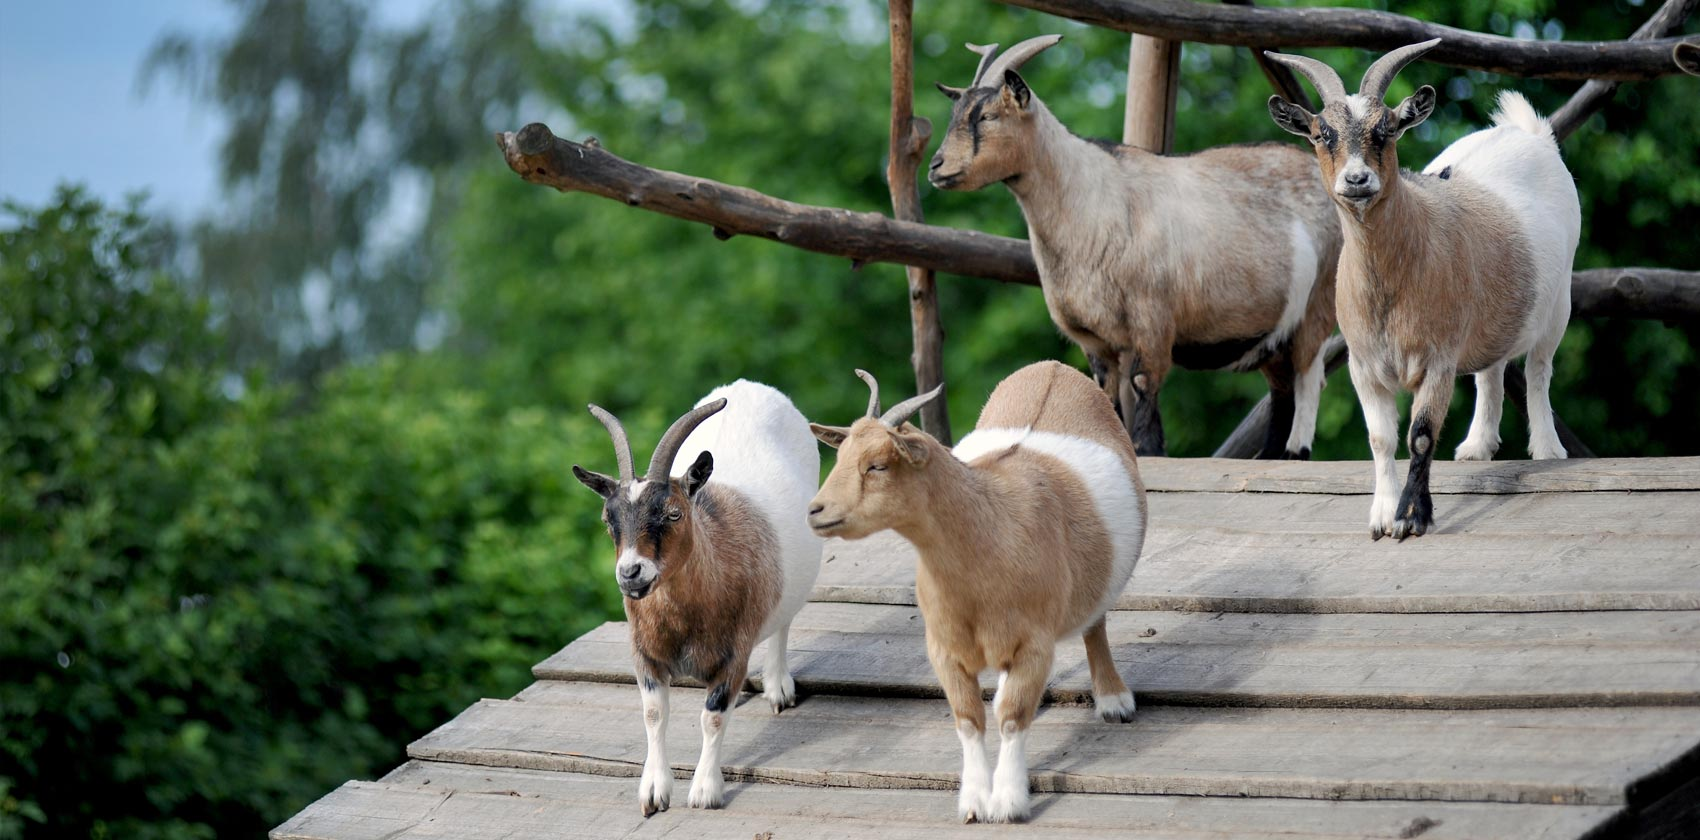 Miniature mountain goats